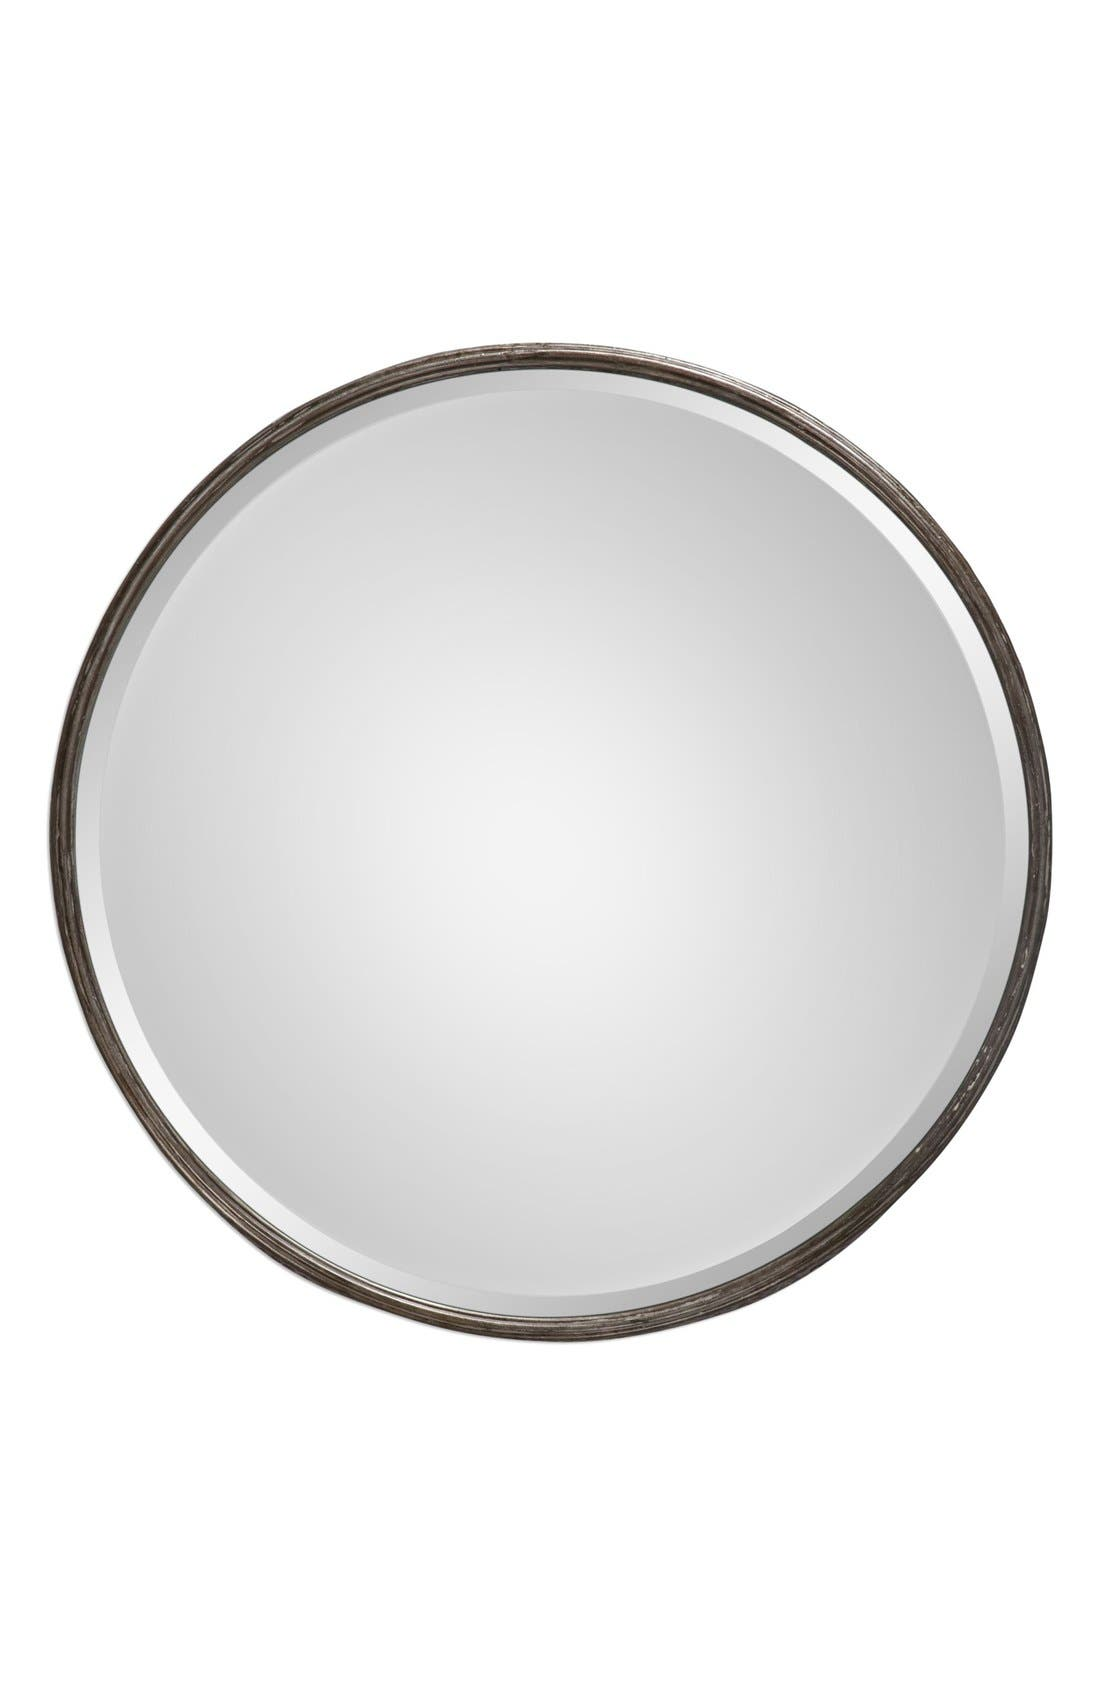 'Nova' Round Metal Mirror,                         Main,                         color,